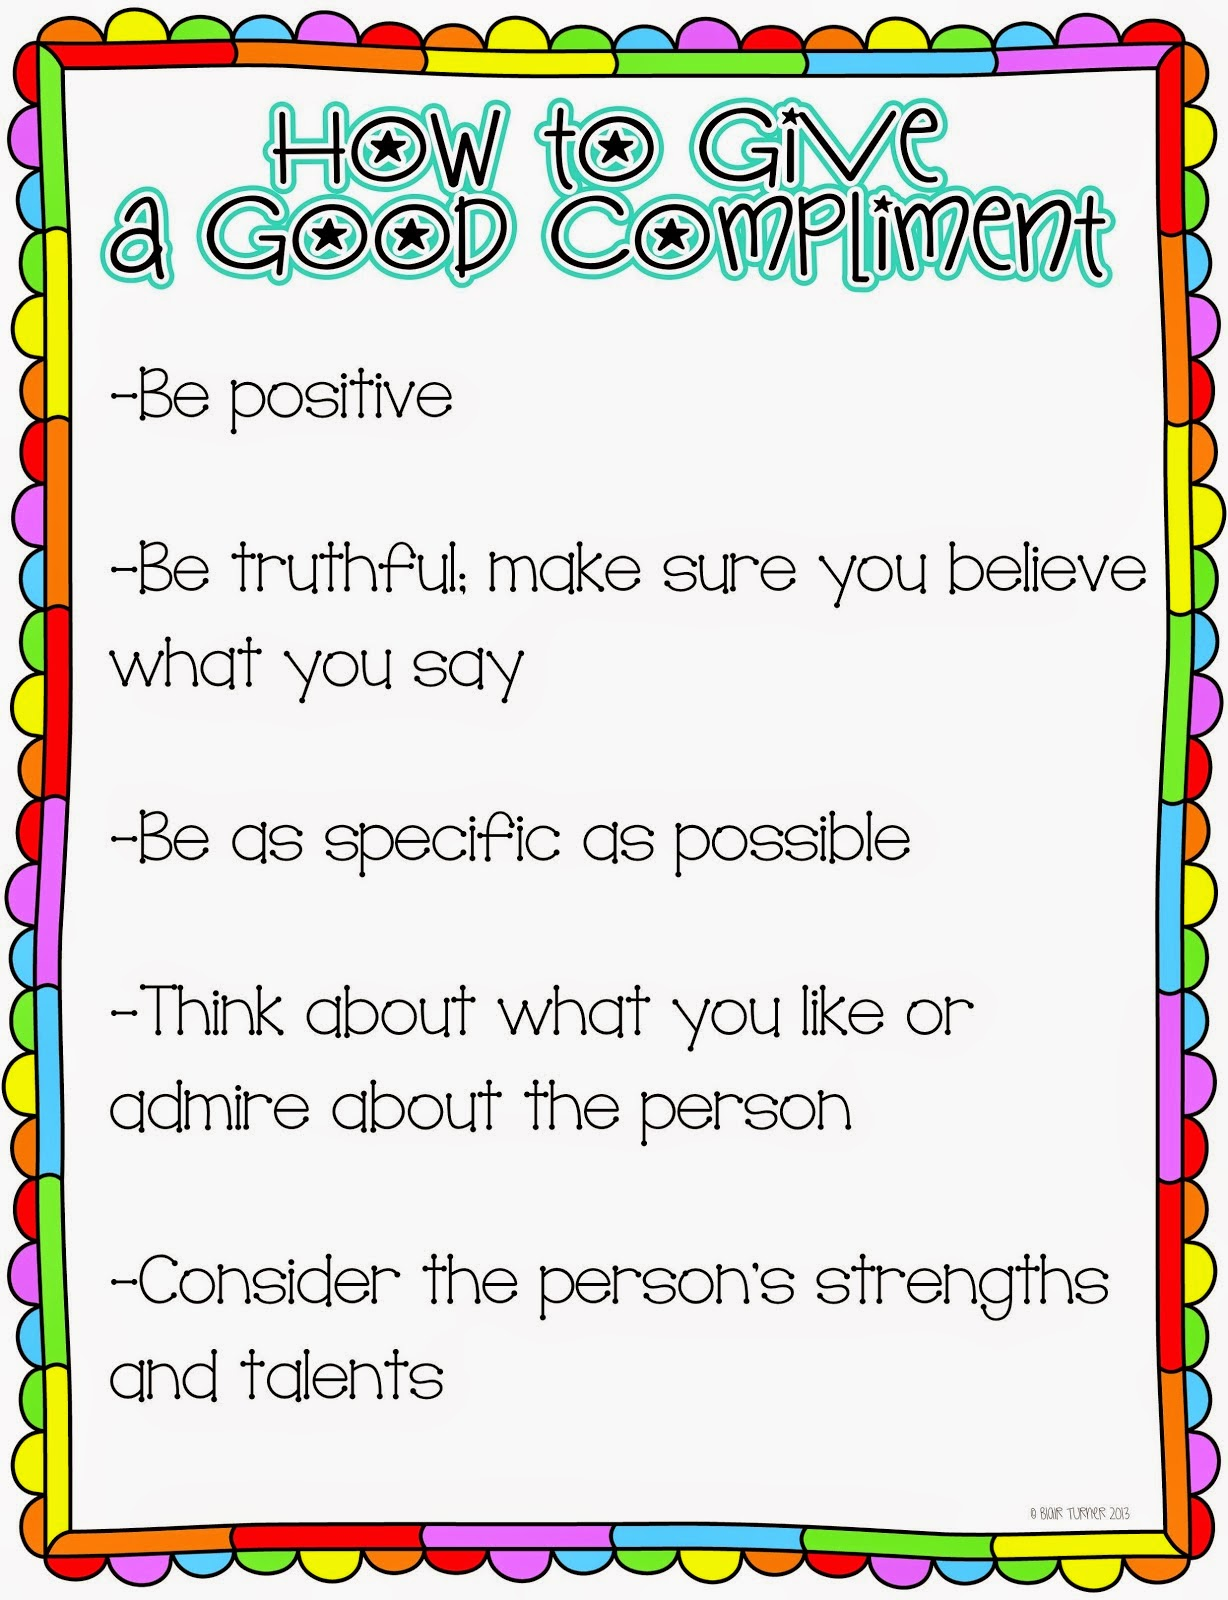 Self-Esteem Challenge Day 25: Giving Compliments and Meeting Yourself